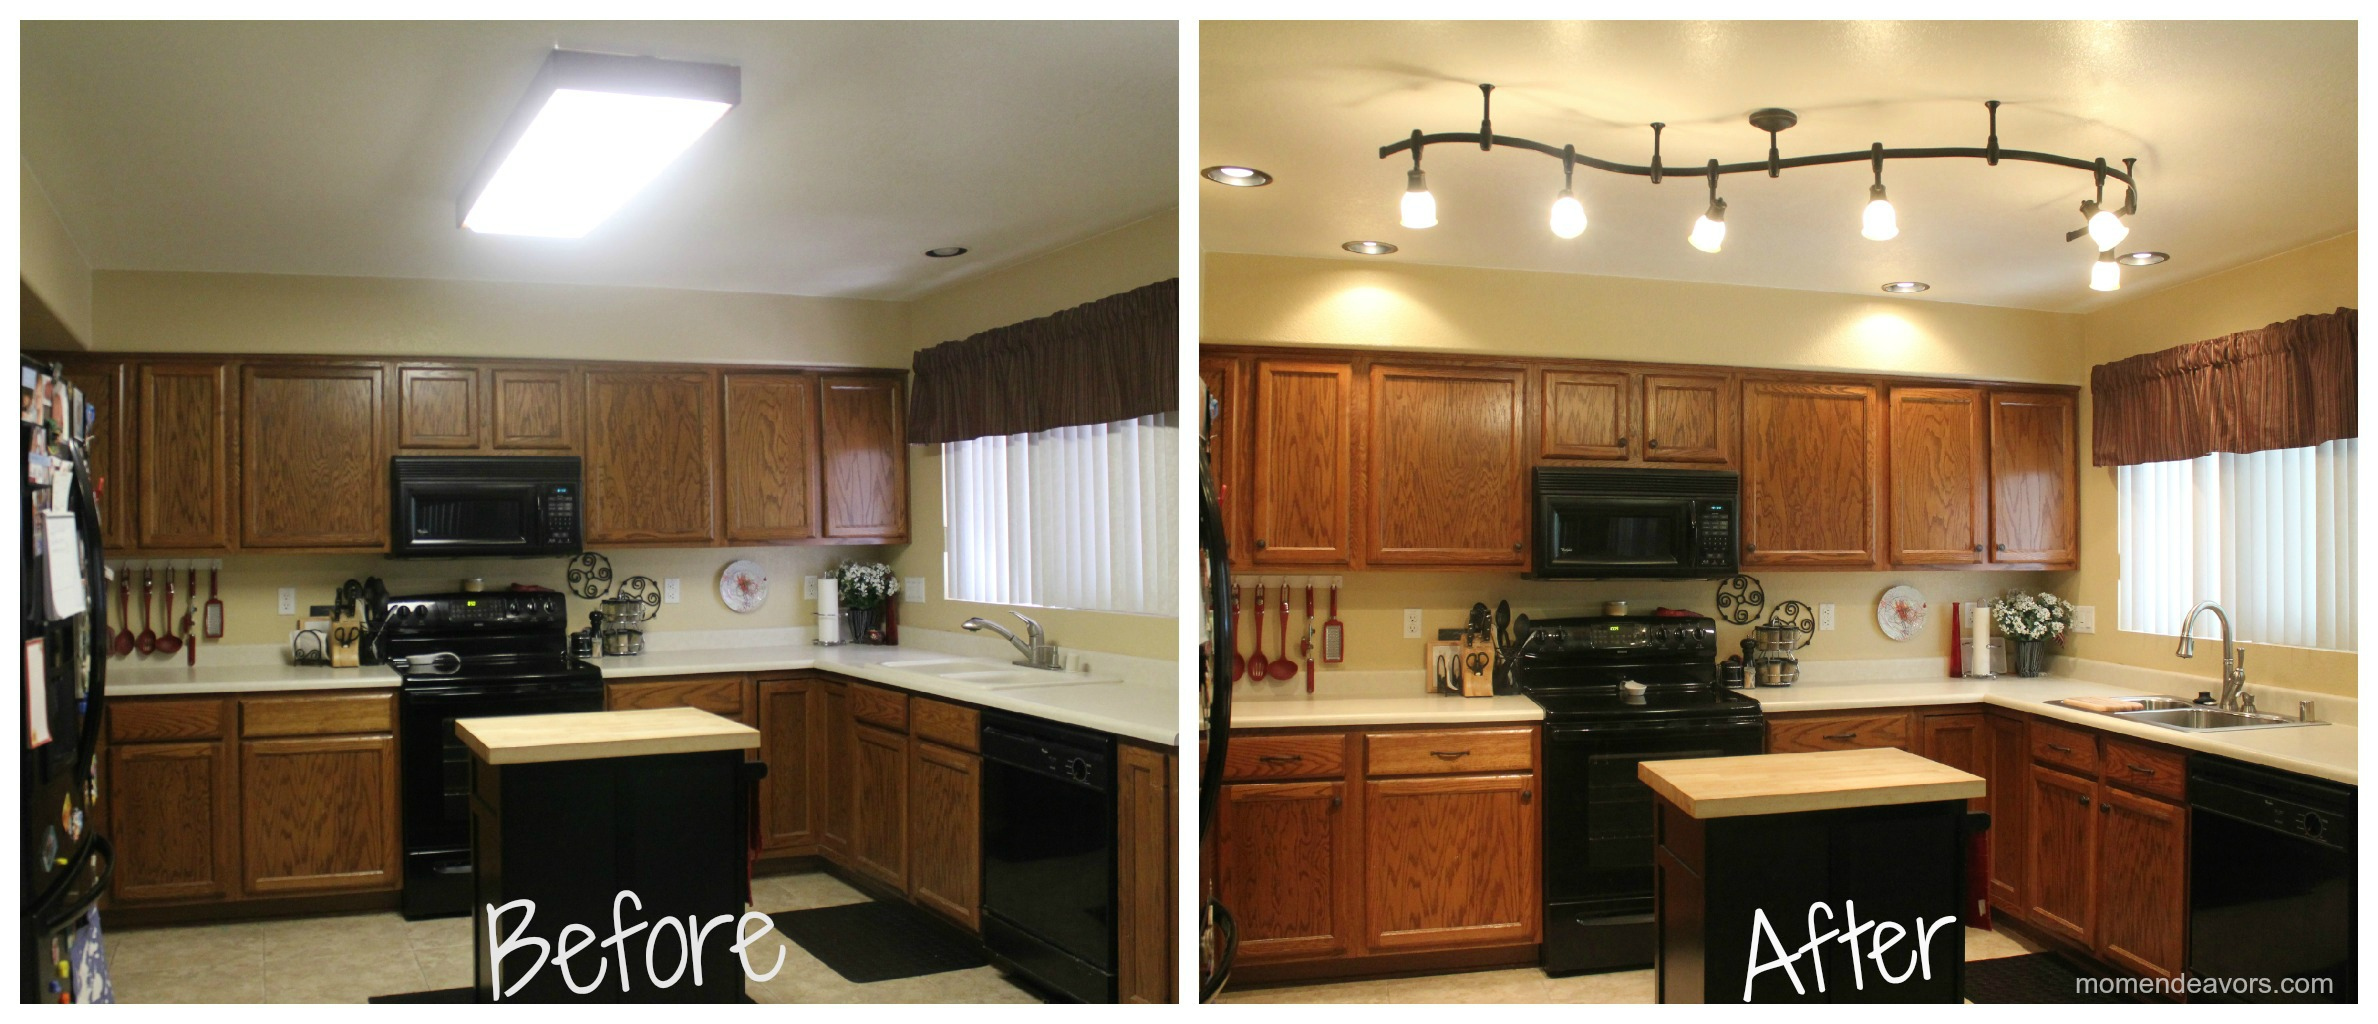 Mini kitchen remodel new lighting makes a world of for Kitchen renovation pictures